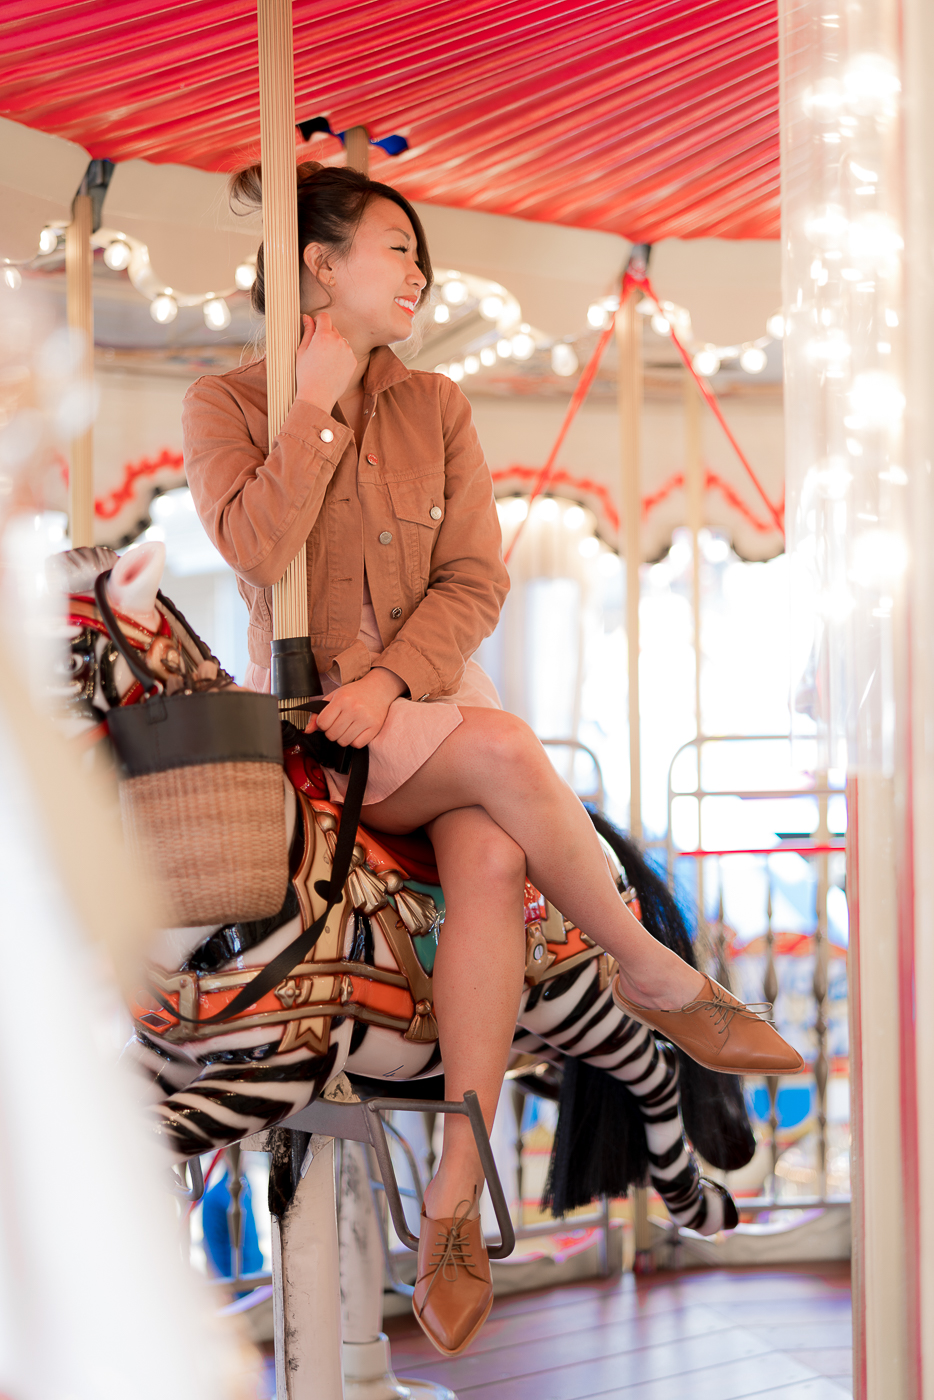 Pier 39 Sustainable Fashion Carousel Shoot | The Chic Diary